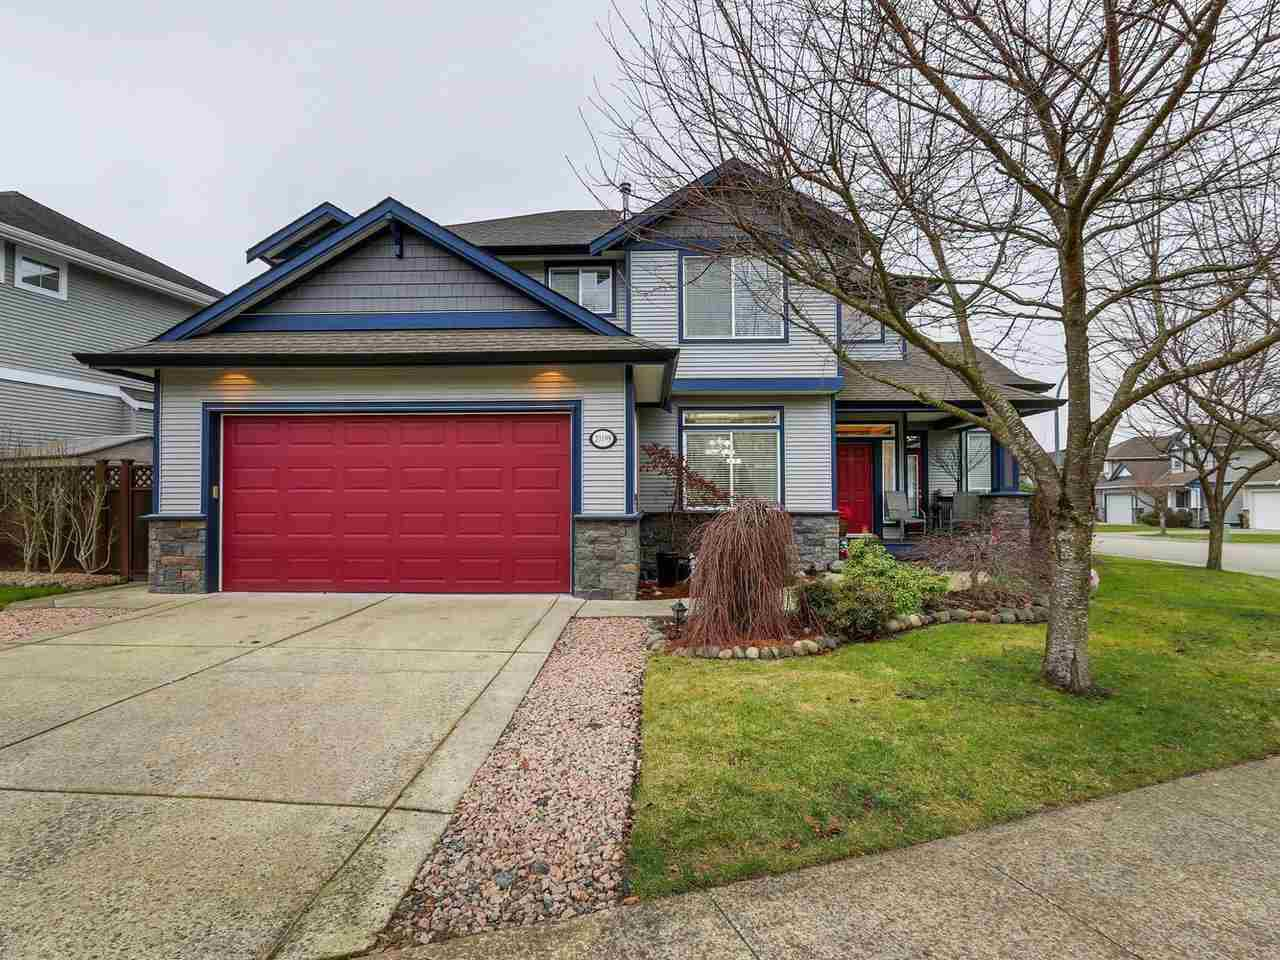 Main Photo: 20198 71A Avenue in Langley: Willoughby Heights House for sale : MLS®# R2329255